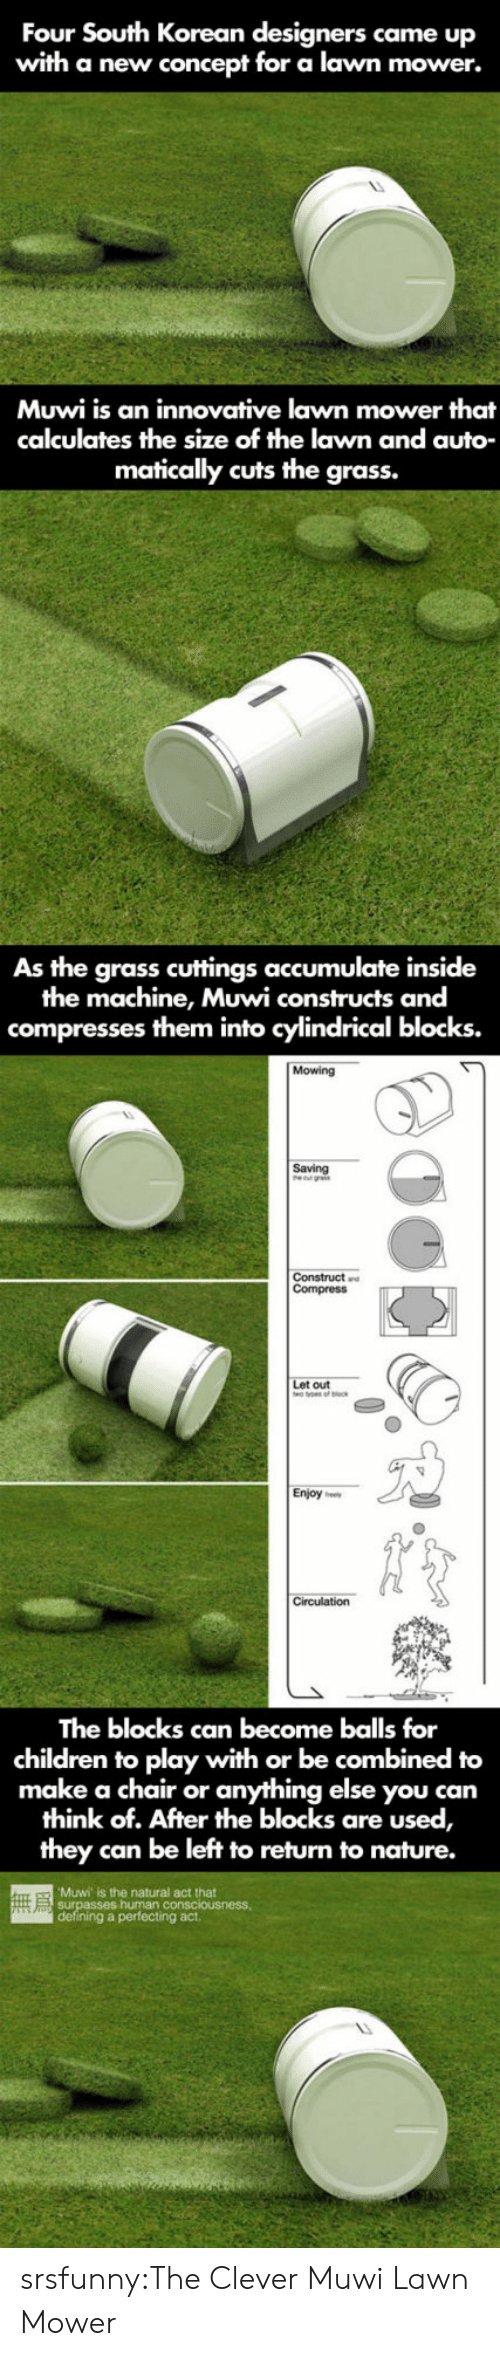 innovative: Four South Korean designers came up  with a new concept for a lawn mower.  Muwi is an innovative lawn mower that  calculates the size of the lawn and auto  matically cuts the grass.  As the grass cuttings accumulate inside  the machine, Muwi constructs and  compresses them into cylindrical blocks.  Mowing  Saving  out  Enjoy ee  The blocks can become balls for  children to play with or be combined to  make a chair or anything else you can  think of. After the blocks are used,  they can be left to return to nature.  Muwi is the natural act that  g a perfecting act srsfunny:The Clever Muwi Lawn Mower